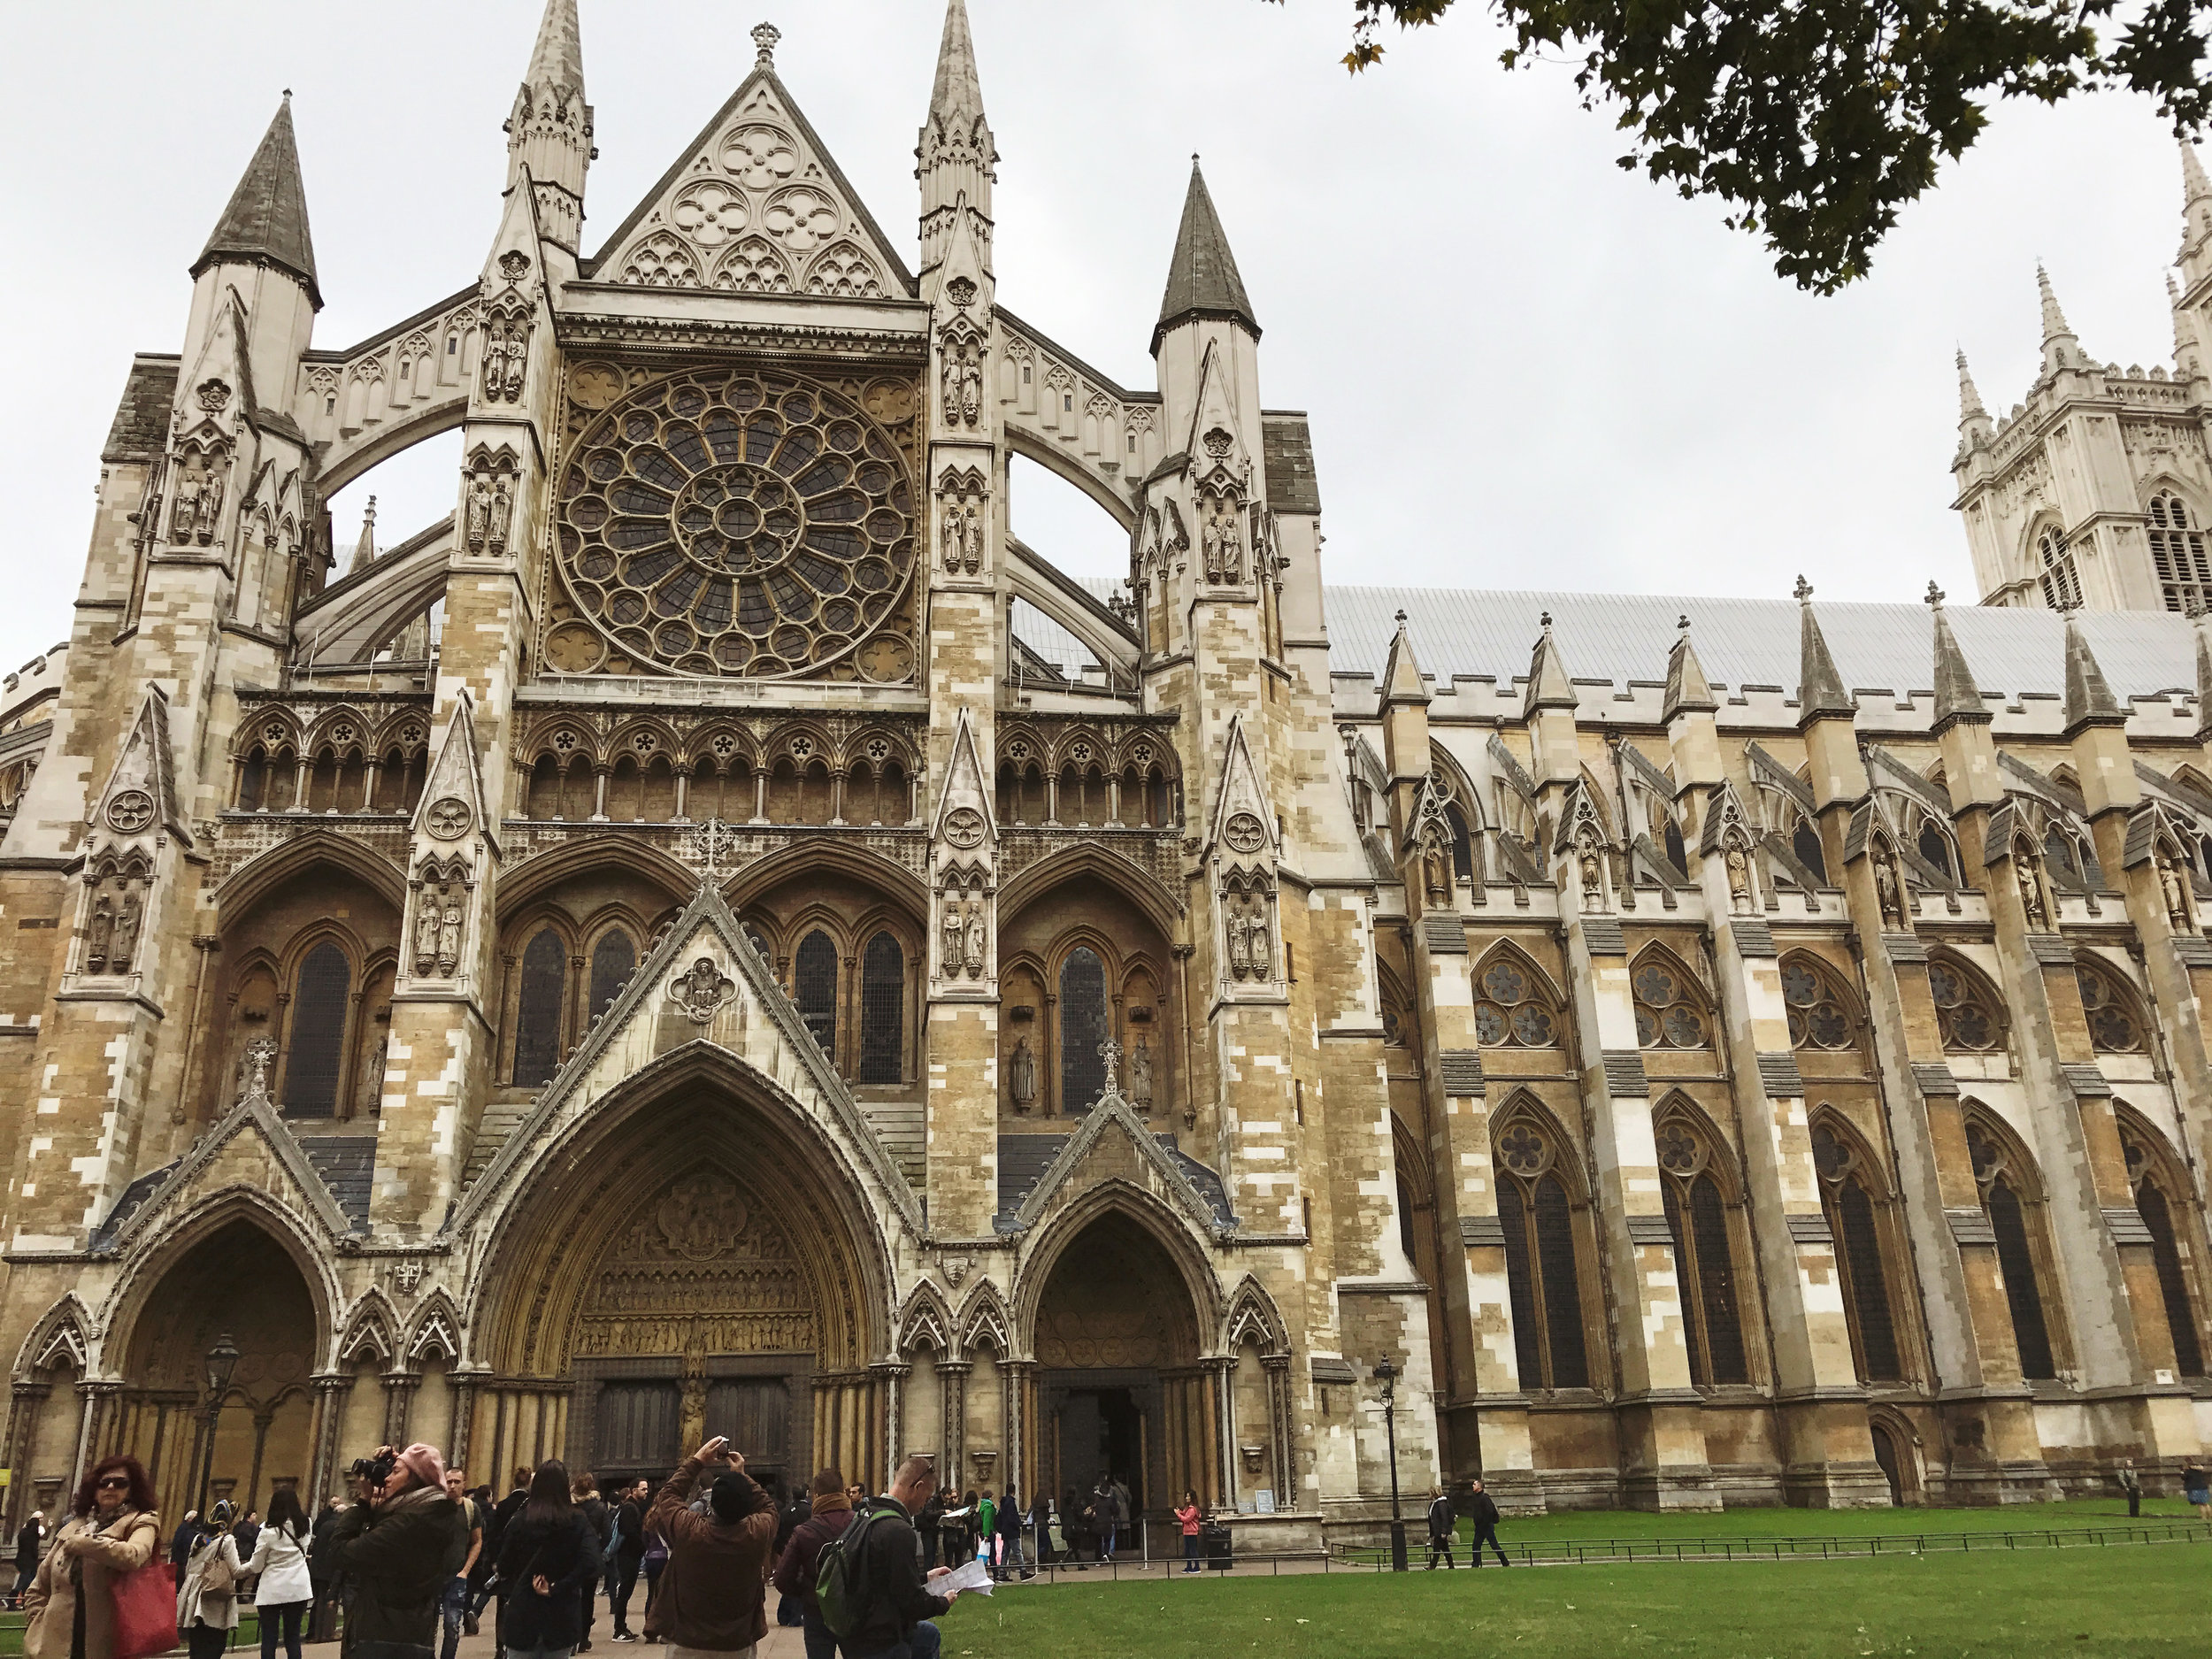 Westminster Abbey in London - #Kurtantravels London Travel Guide Part 2 - BySarahRae.com